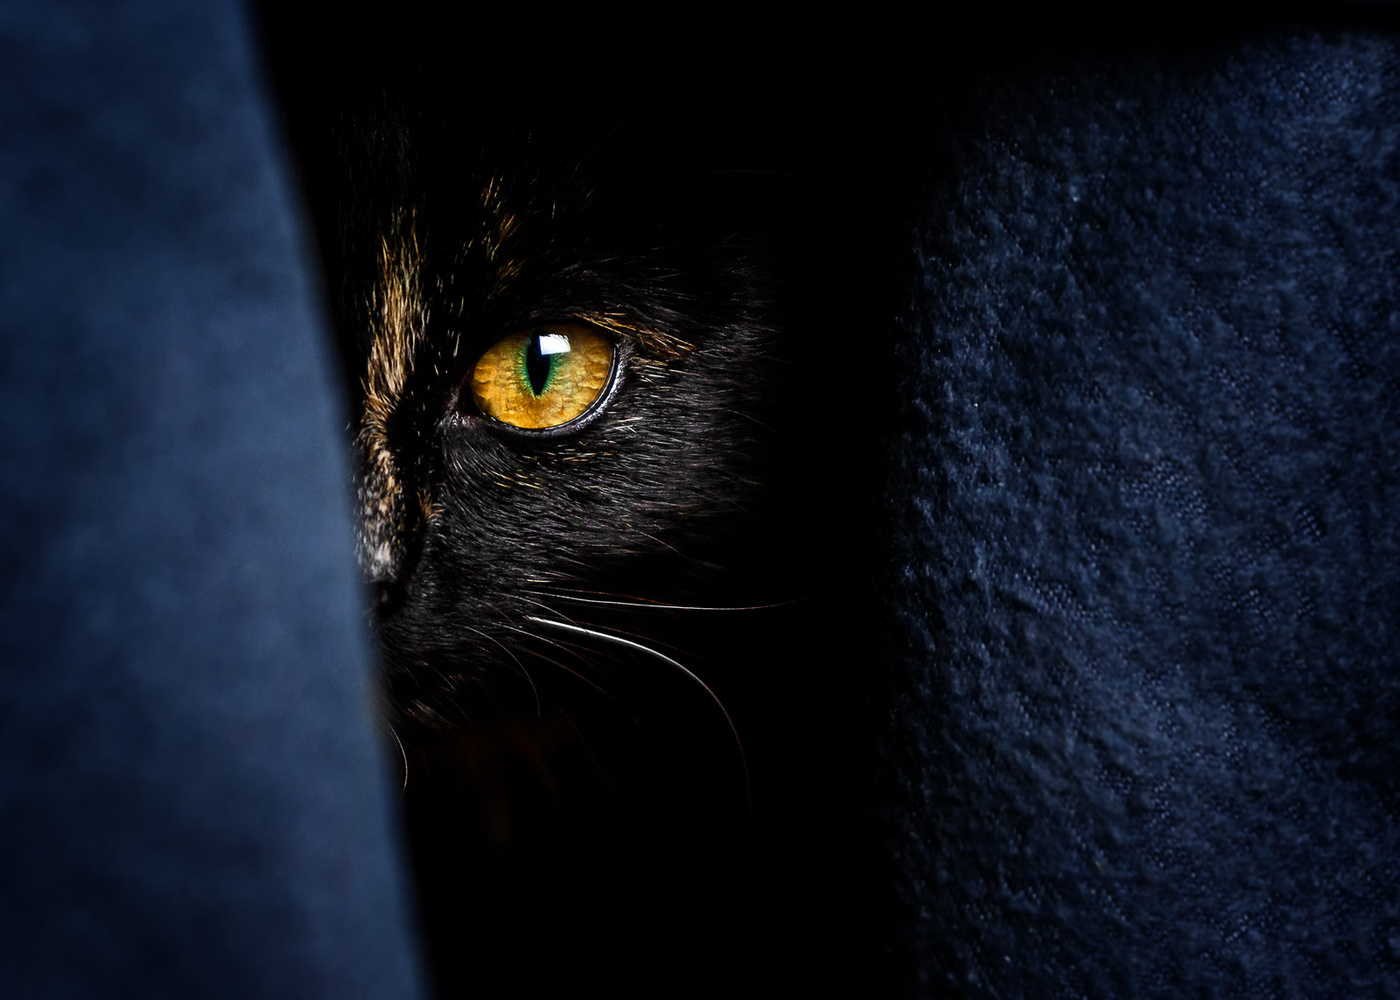 I see you by Patrick Illhardt